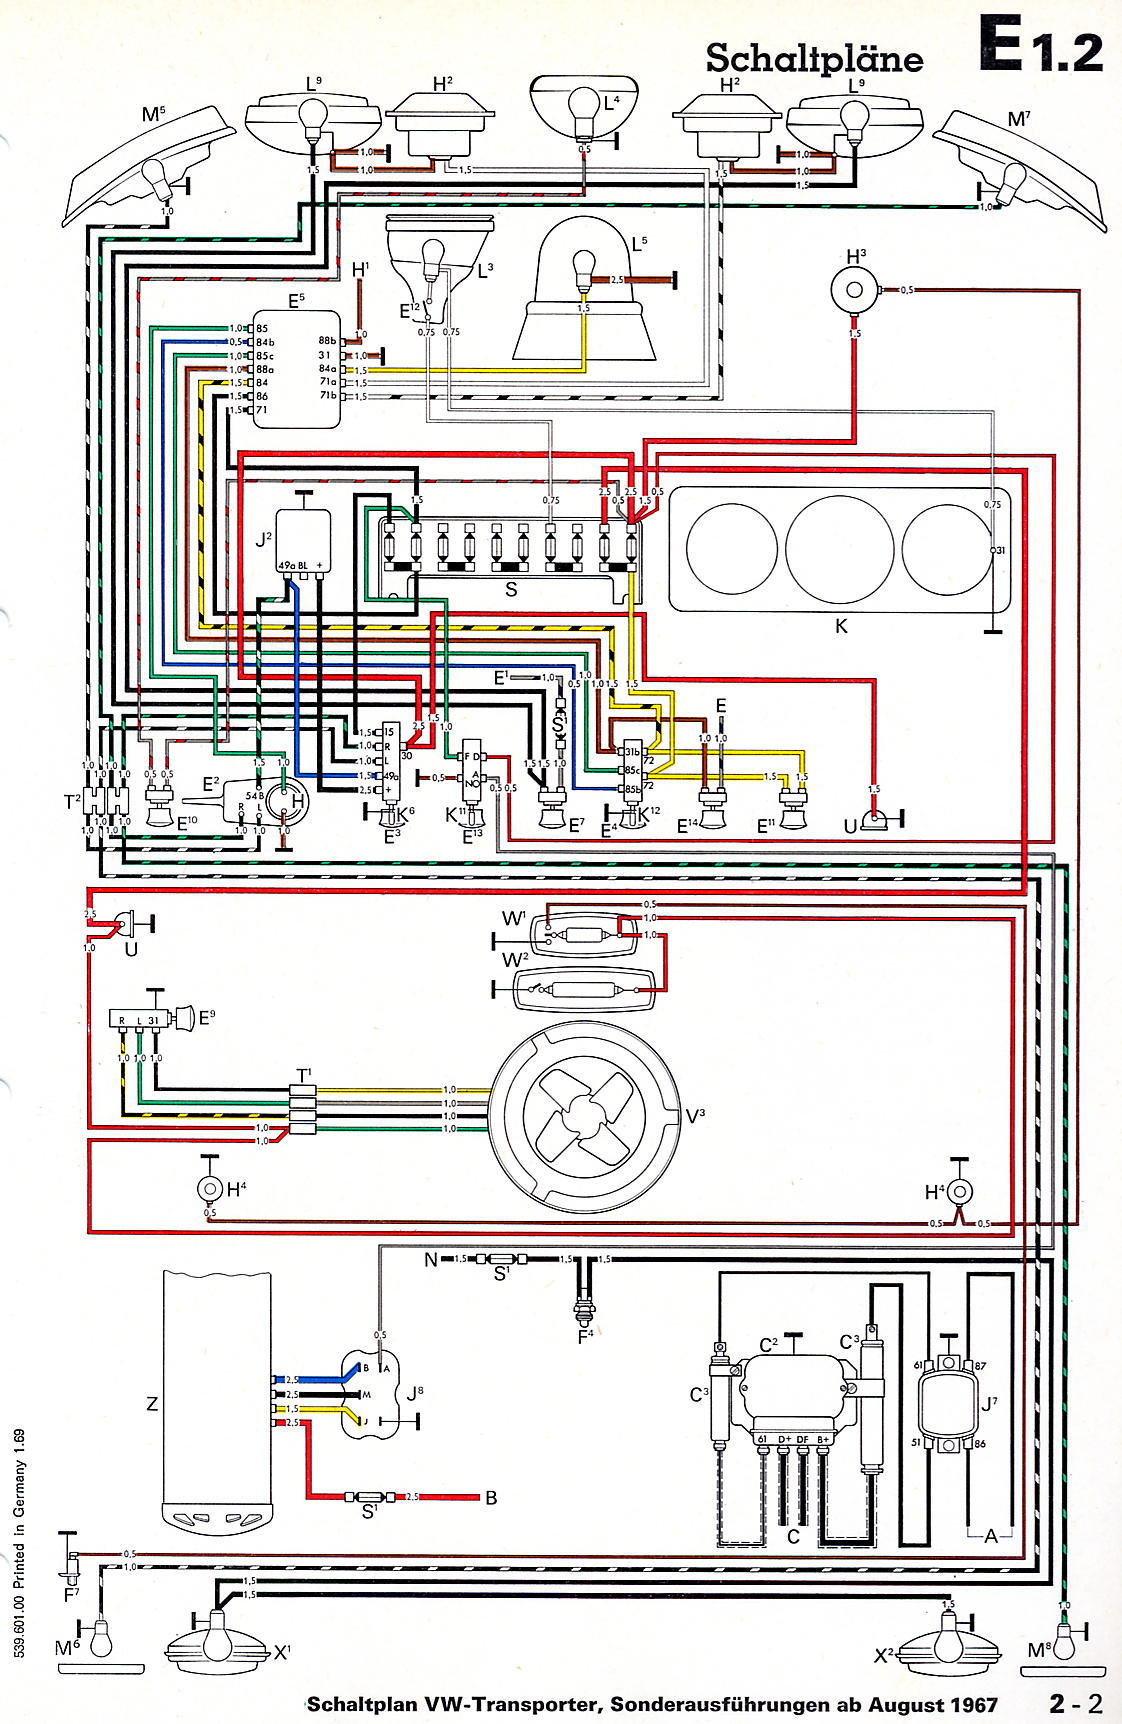 hight resolution of vw t4 wiring diagram free wiring diagram portal vw vanagon camper vw t4 camper wiring diagram